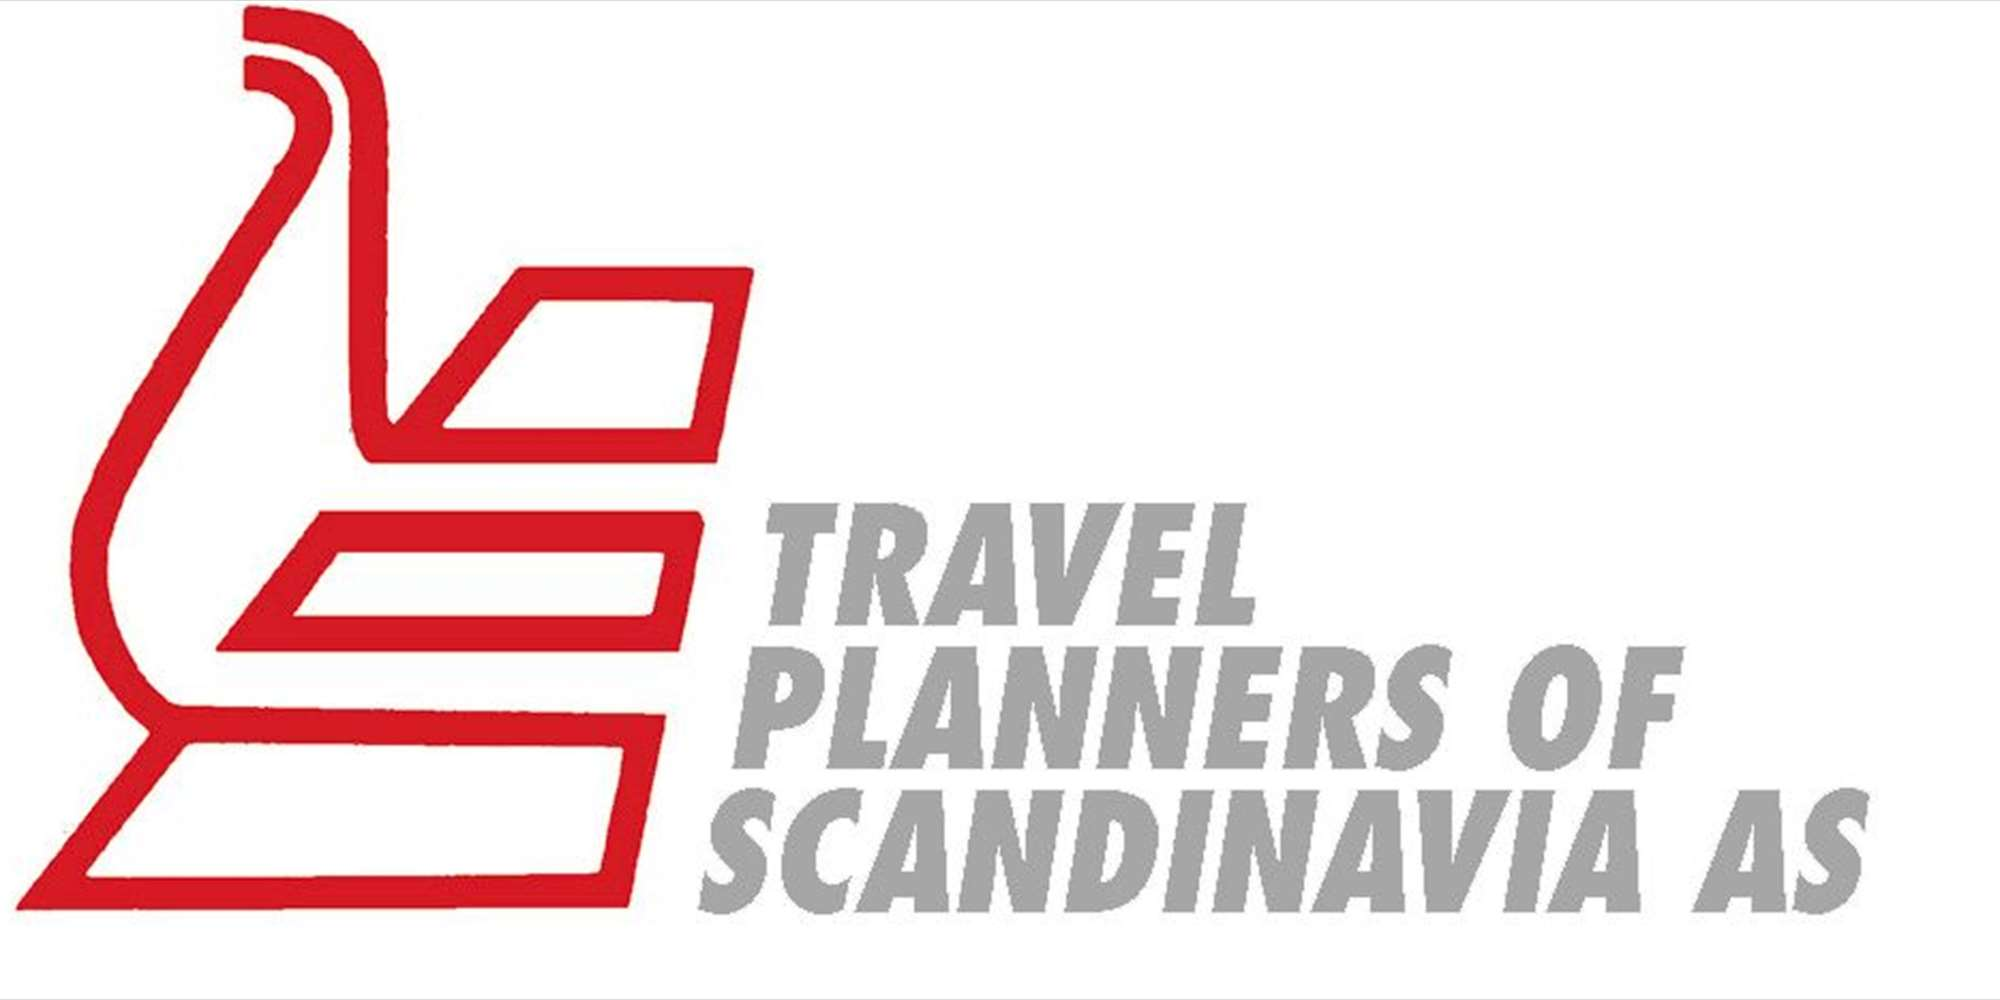 Travel Planners of Scandinavia AS